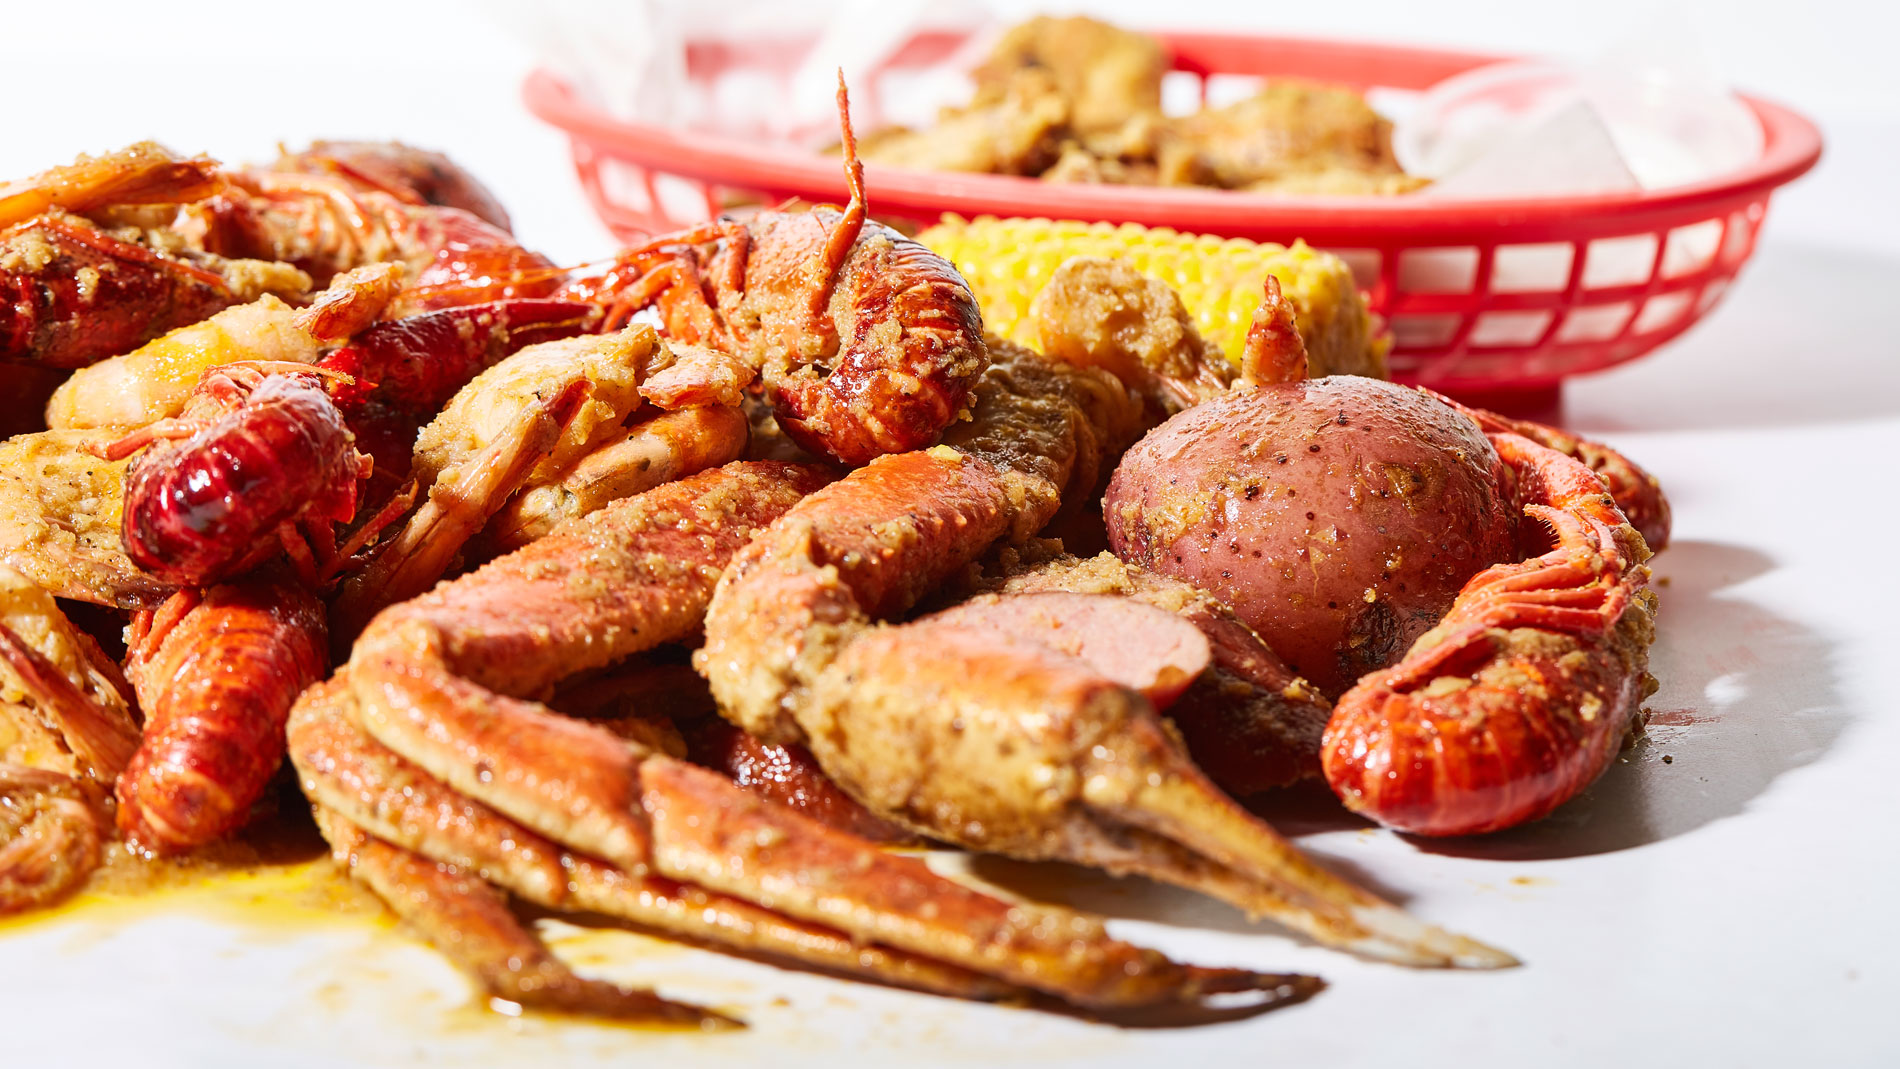 a pile of red crawfish, corn and sausages